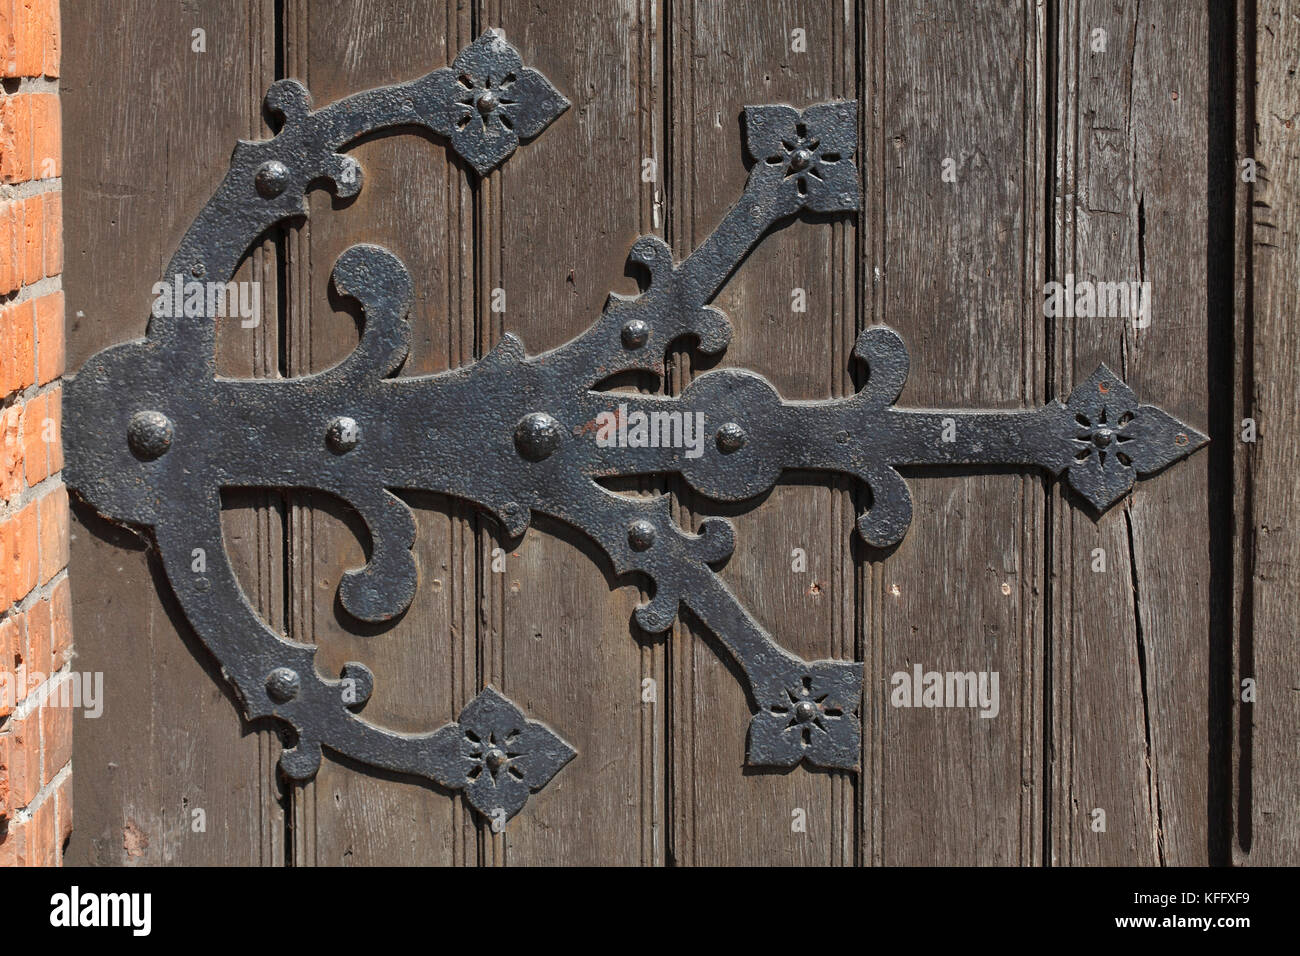 Gusseisern stock photos images alamy